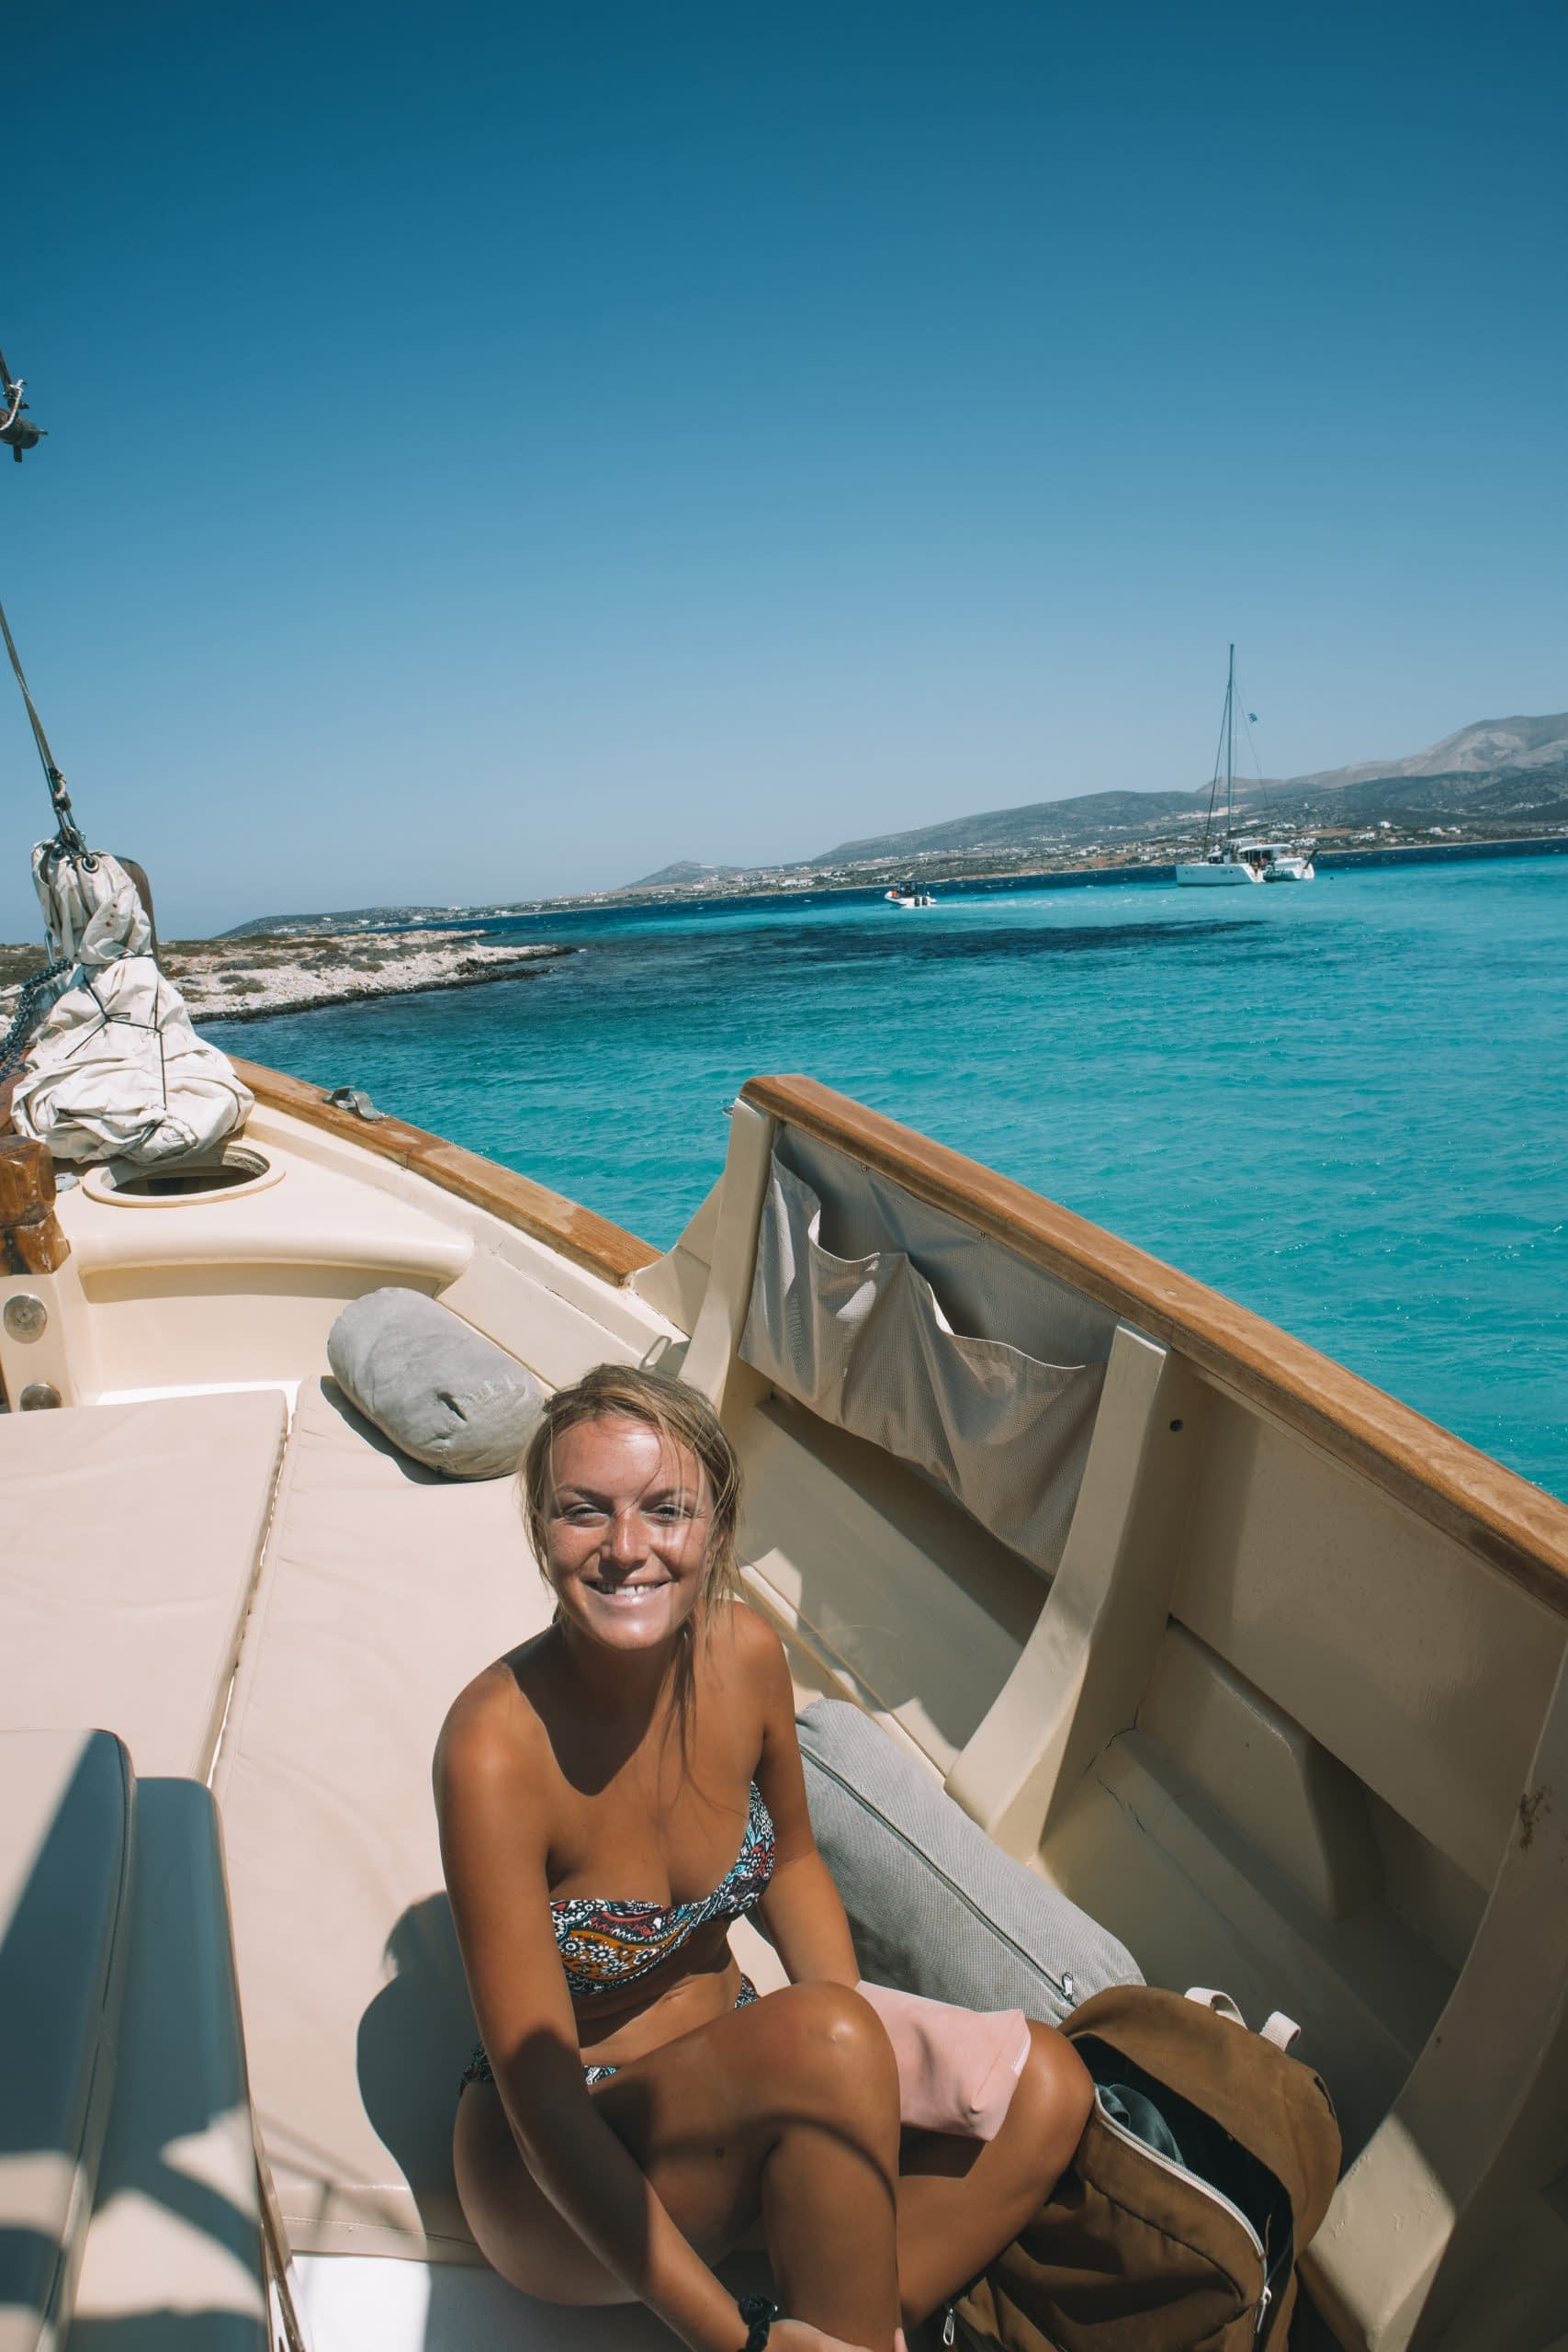 A woman smiling sat on a boat with the turquoise ocean in the background. Antiparos travel blog